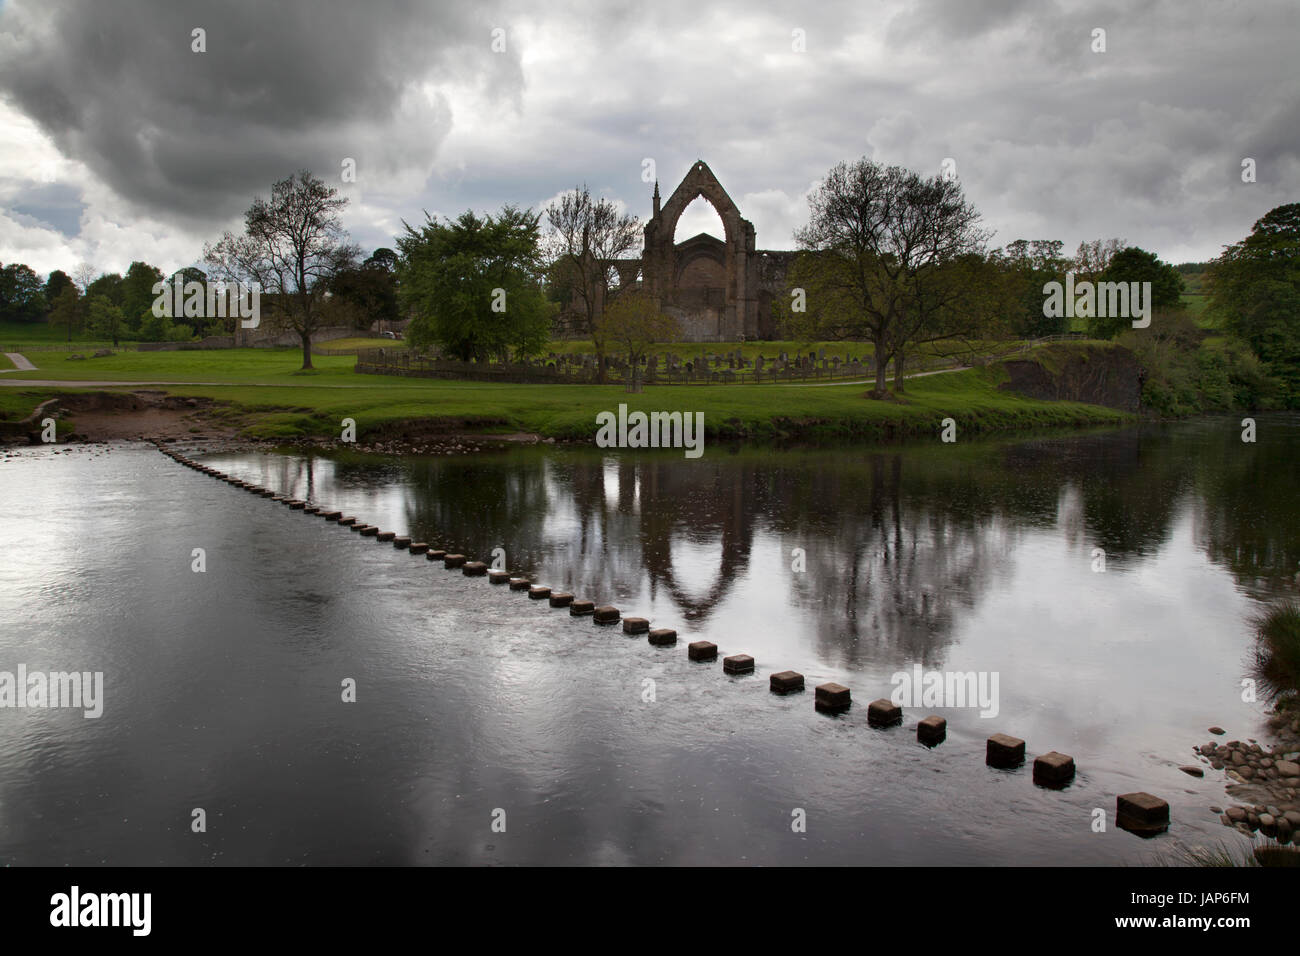 Bolton Abbey Priory and Stepping Stones, Wharfedale, Yorkshire Dales - Stock Image